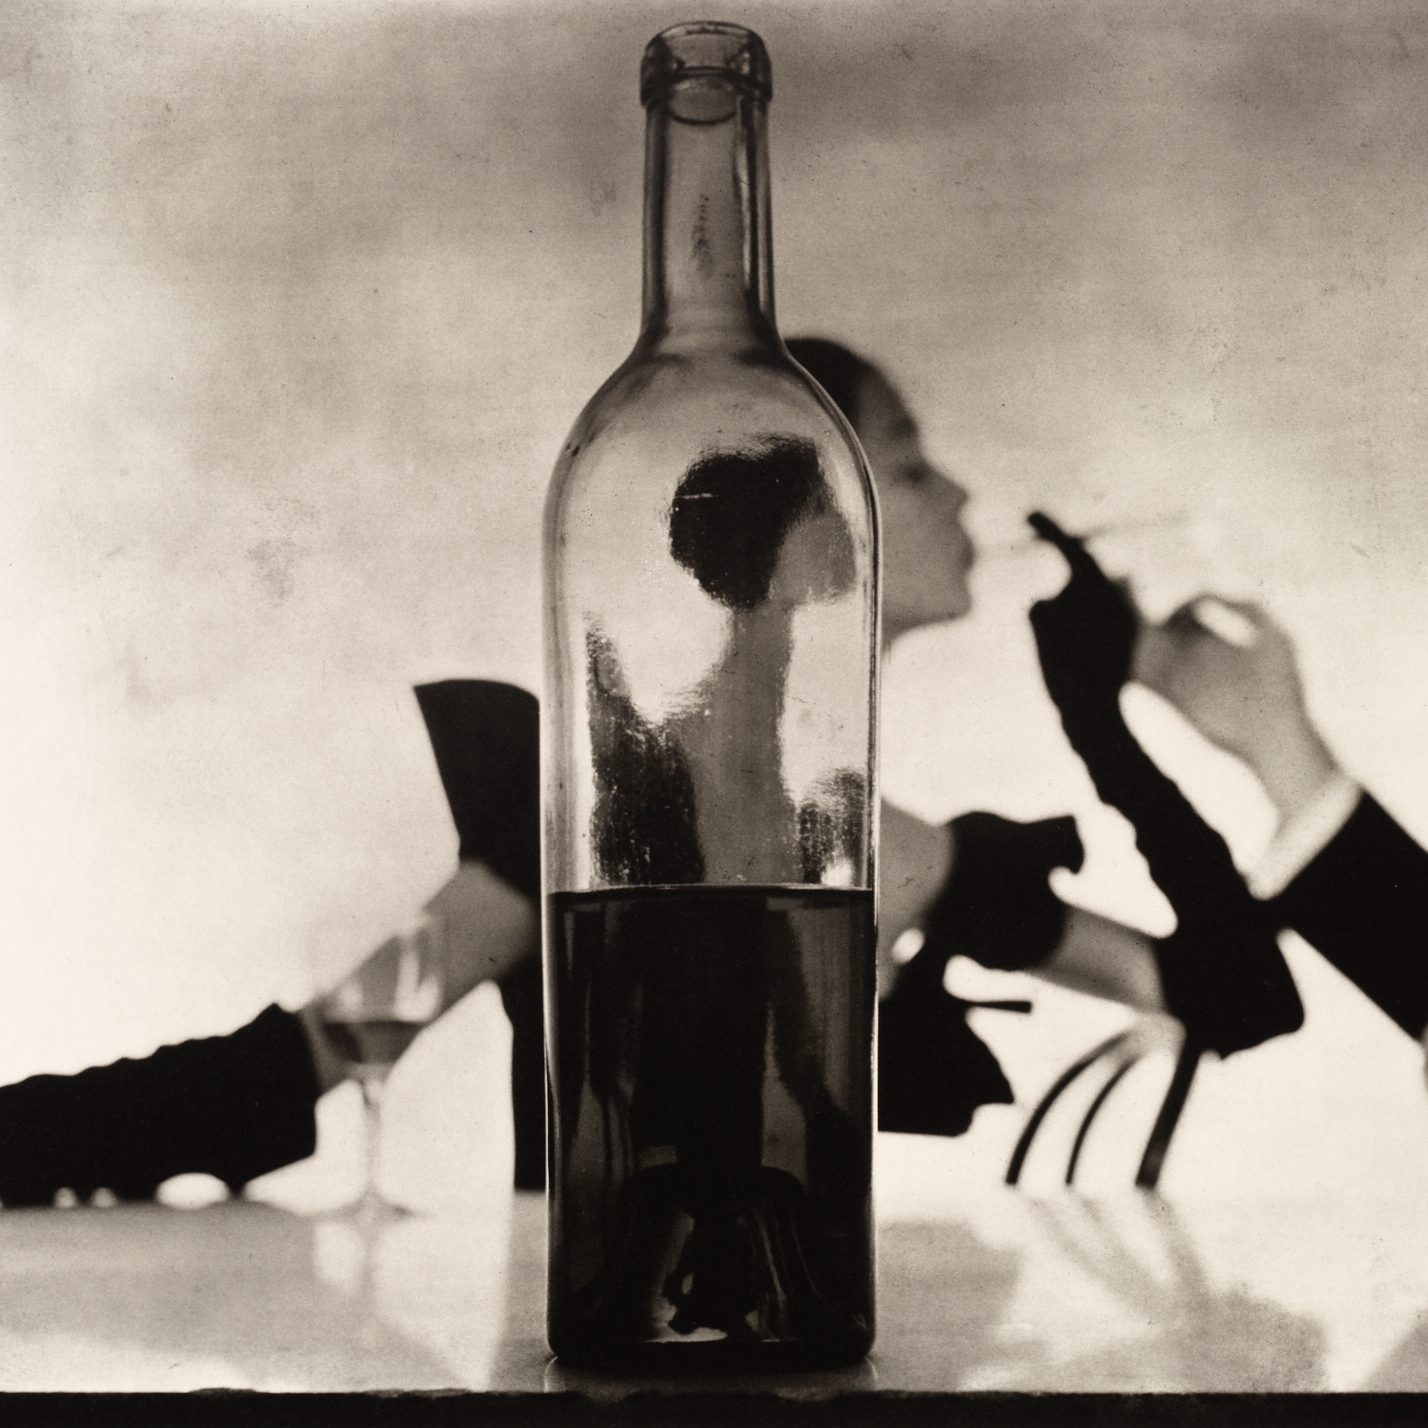 black and white portrait of a woman through a glass bottle